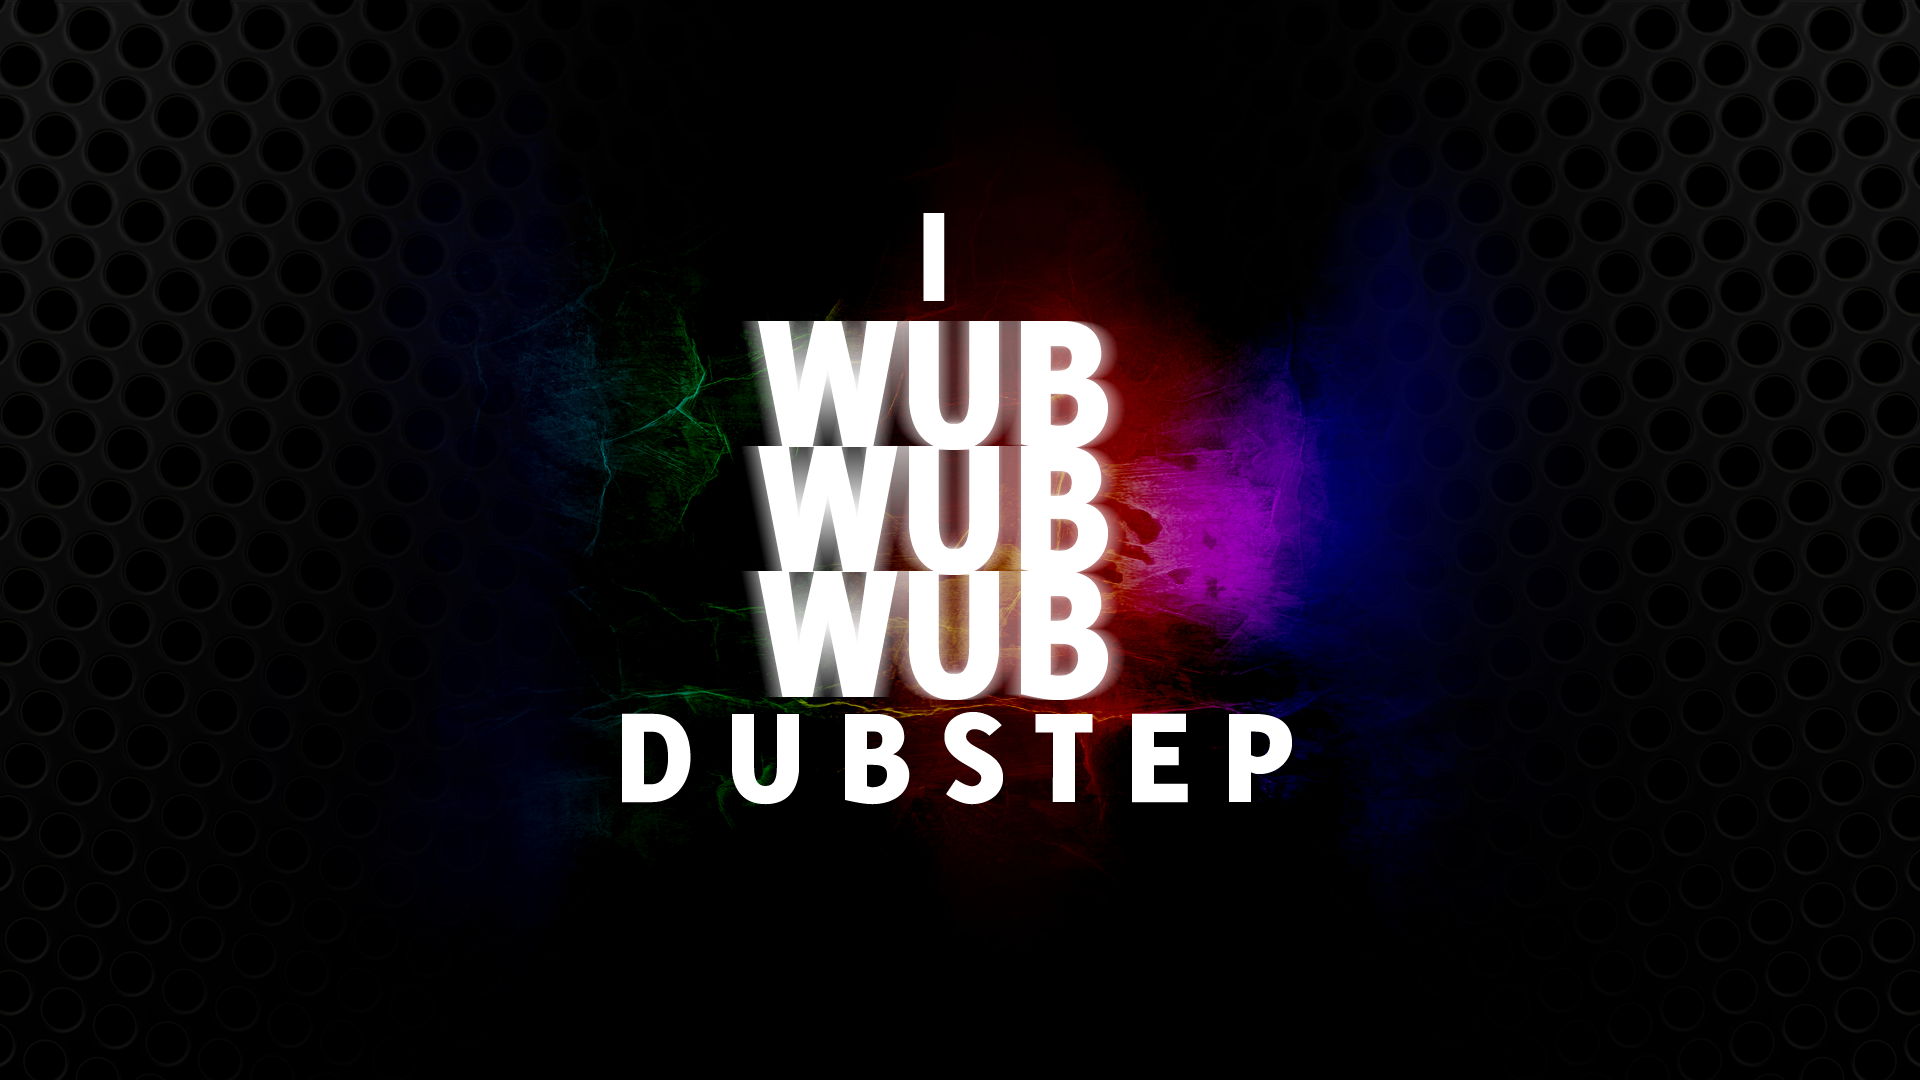 Dubstep Wallpapers HD - Wallpaper Cave